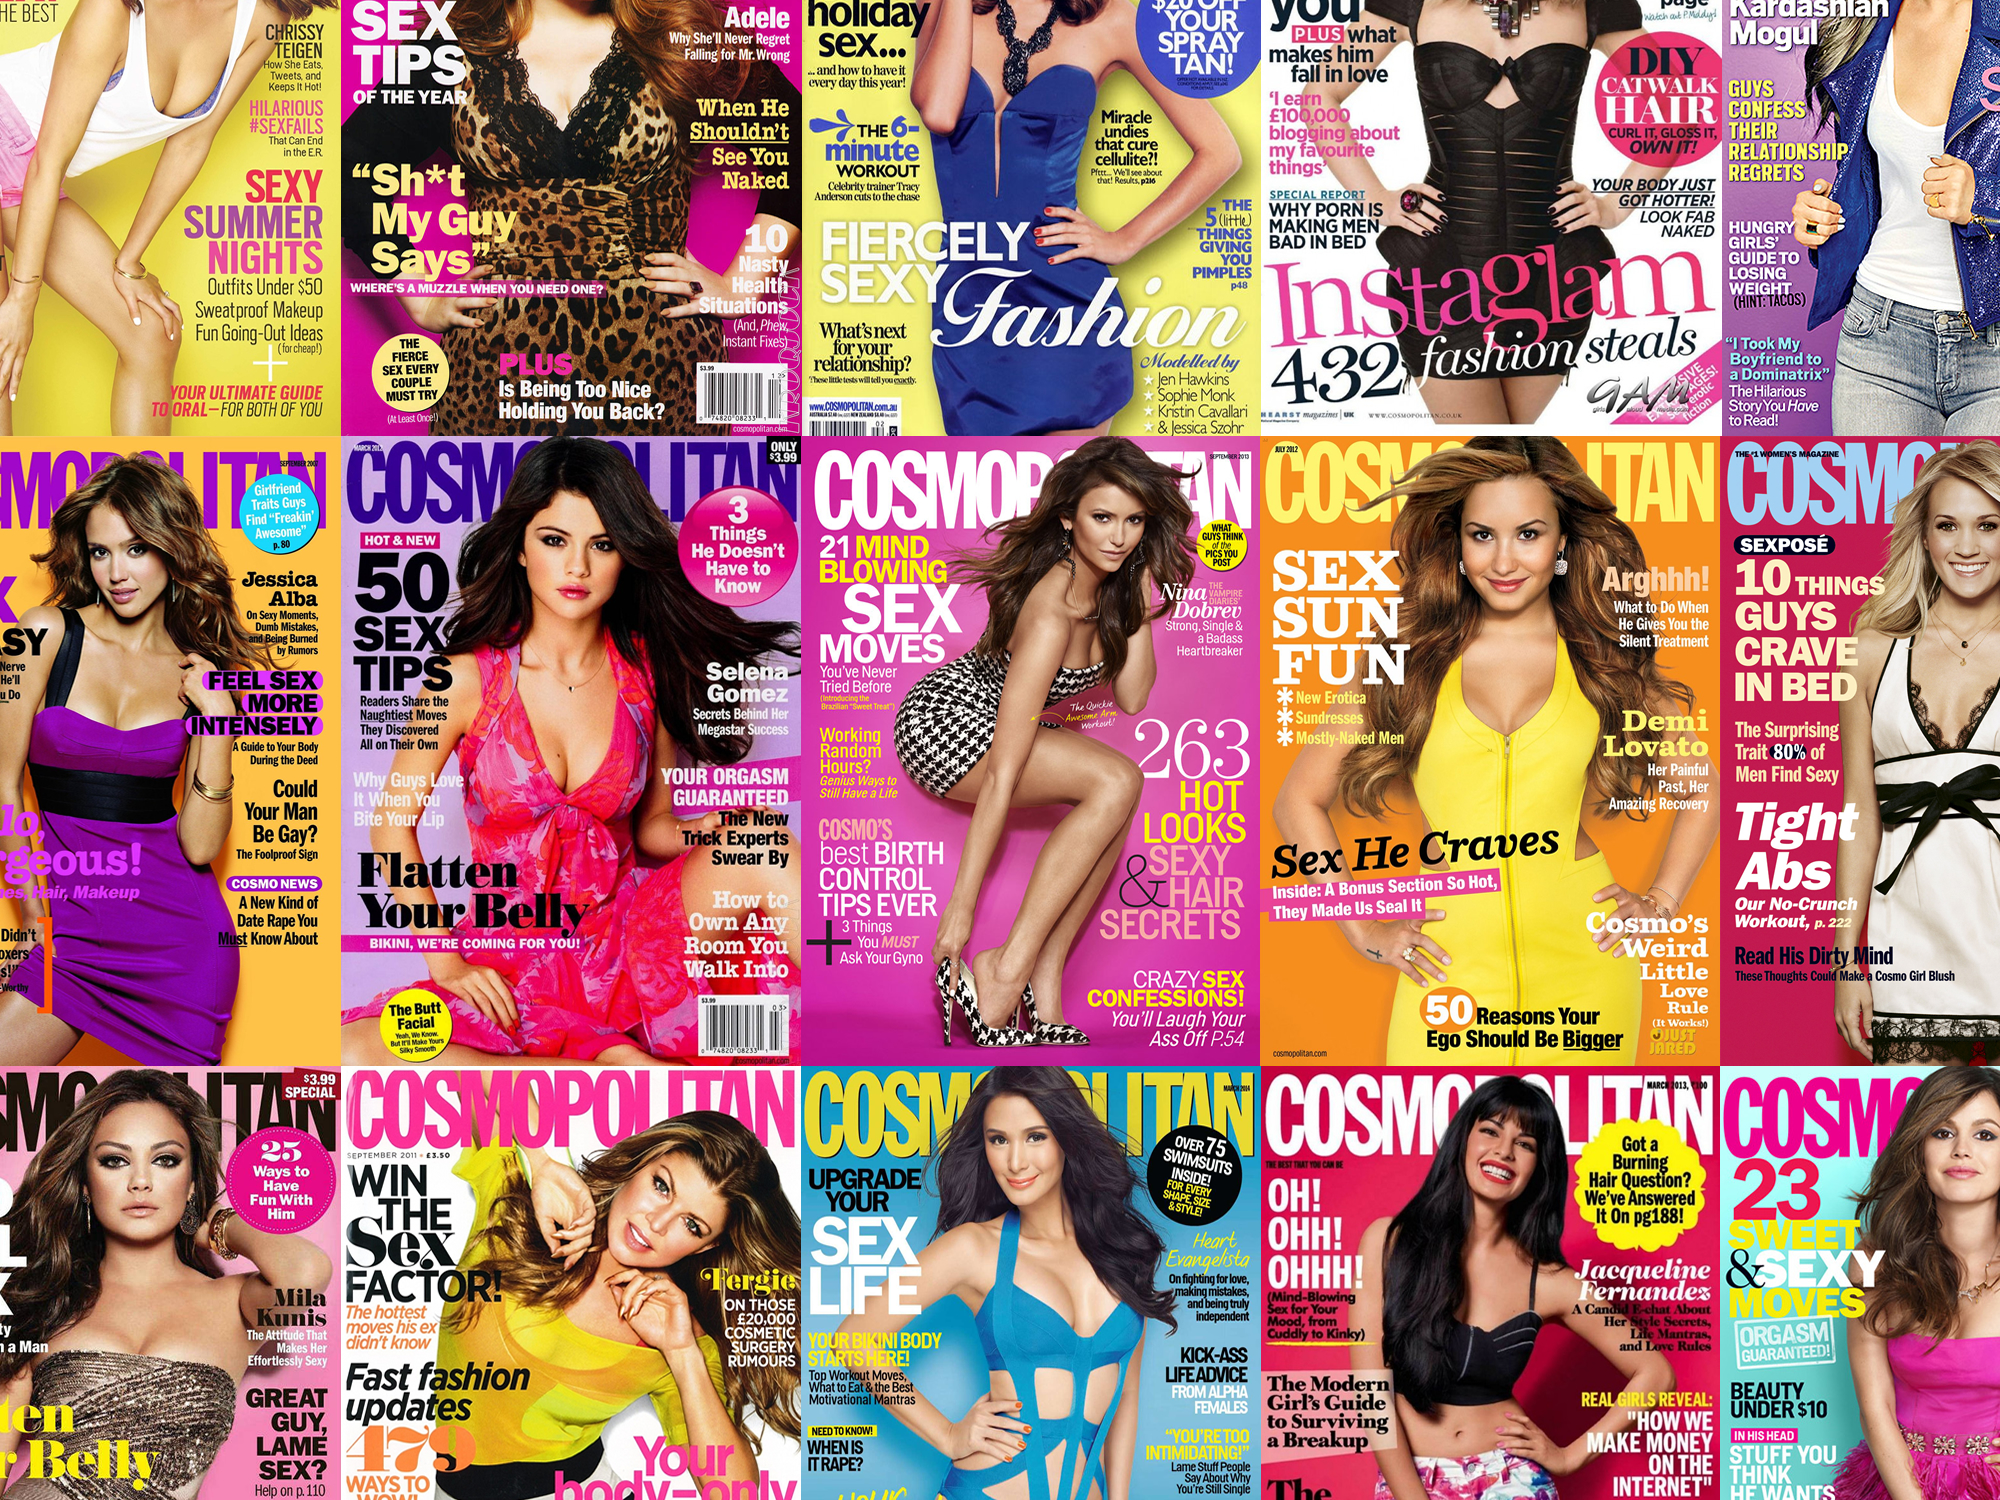 1 Million eBooks in Cosmopolitan Magazine